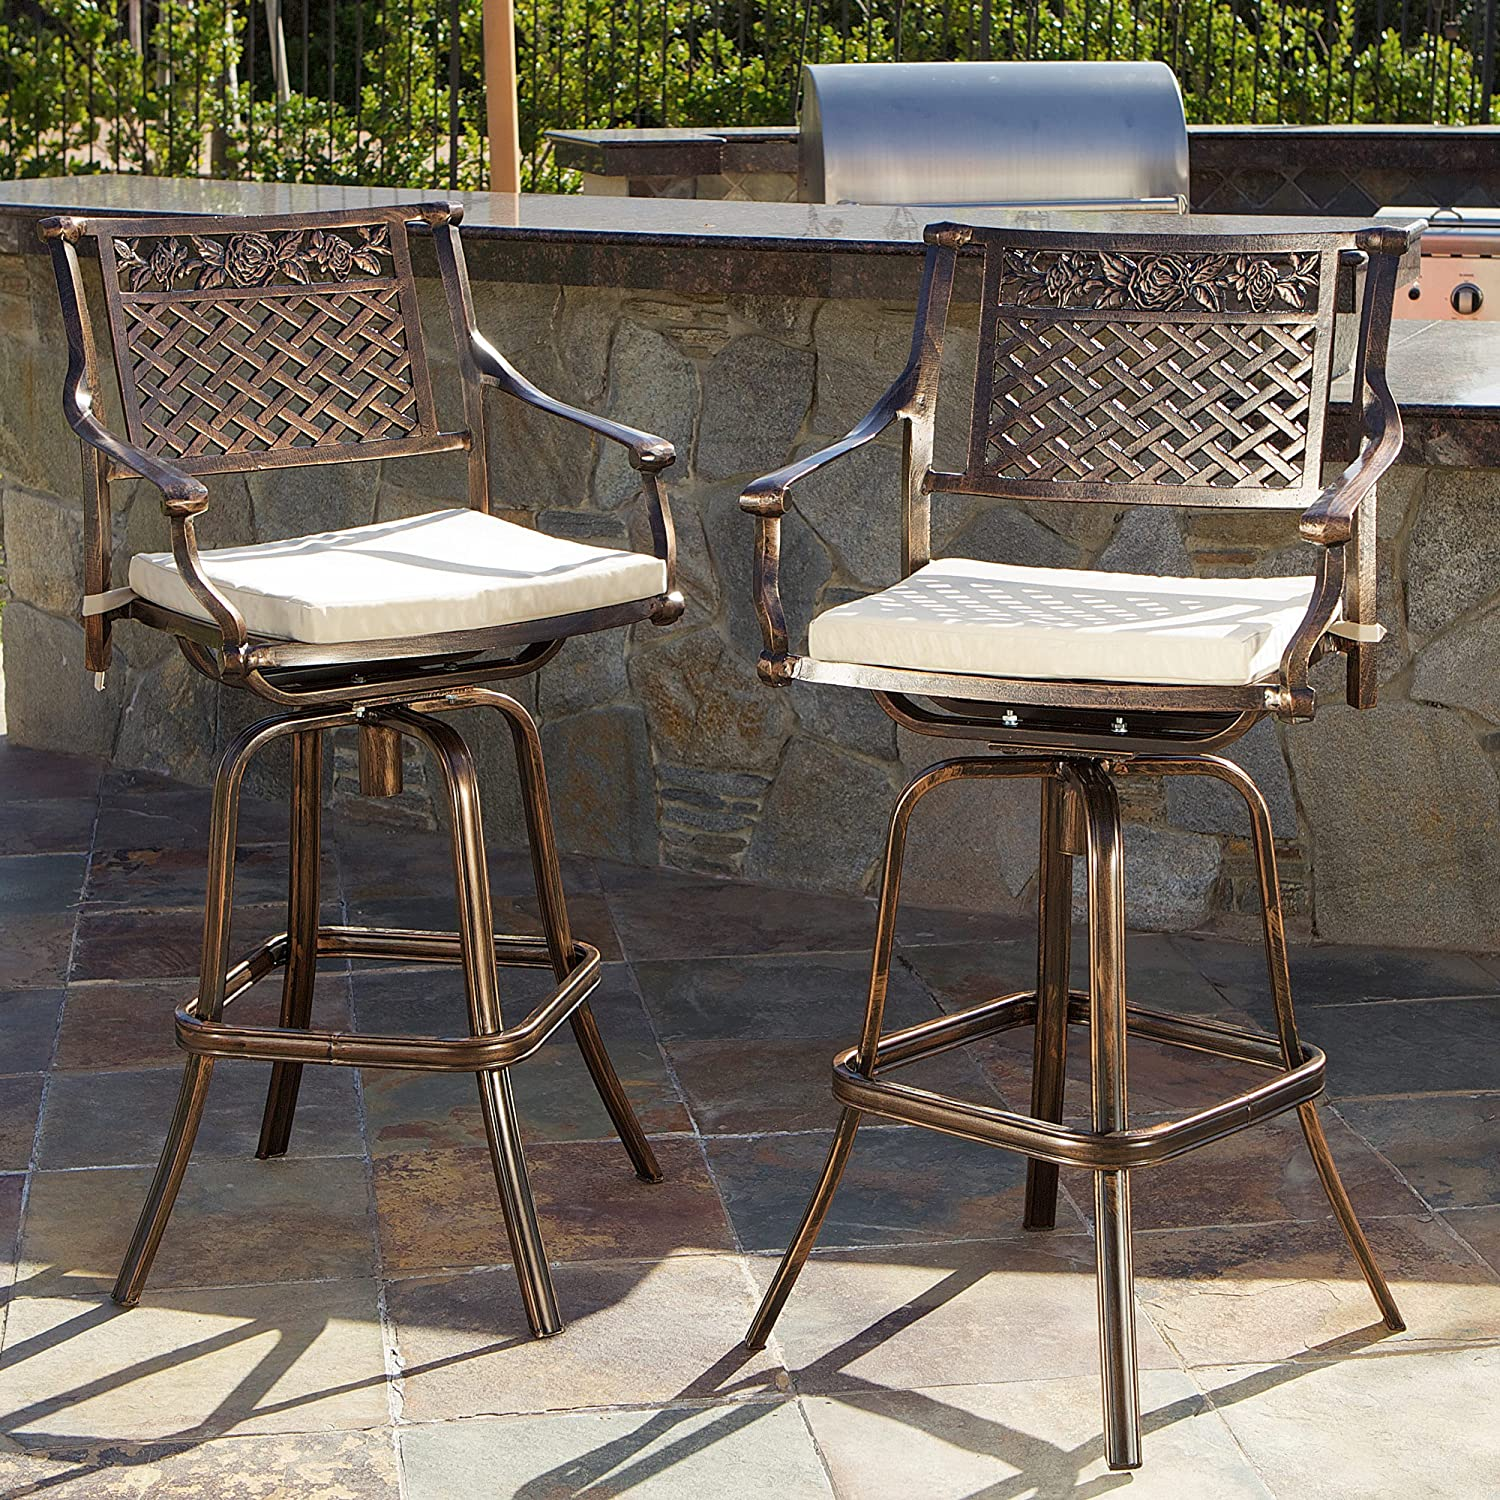 Amazon.com : Sierra Outdoor Cast Aluminum Swivel Bar Stools w/Cushion (Set  of 2) : Garden & Outdoor - Amazon.com : Sierra Outdoor Cast Aluminum Swivel Bar Stools W